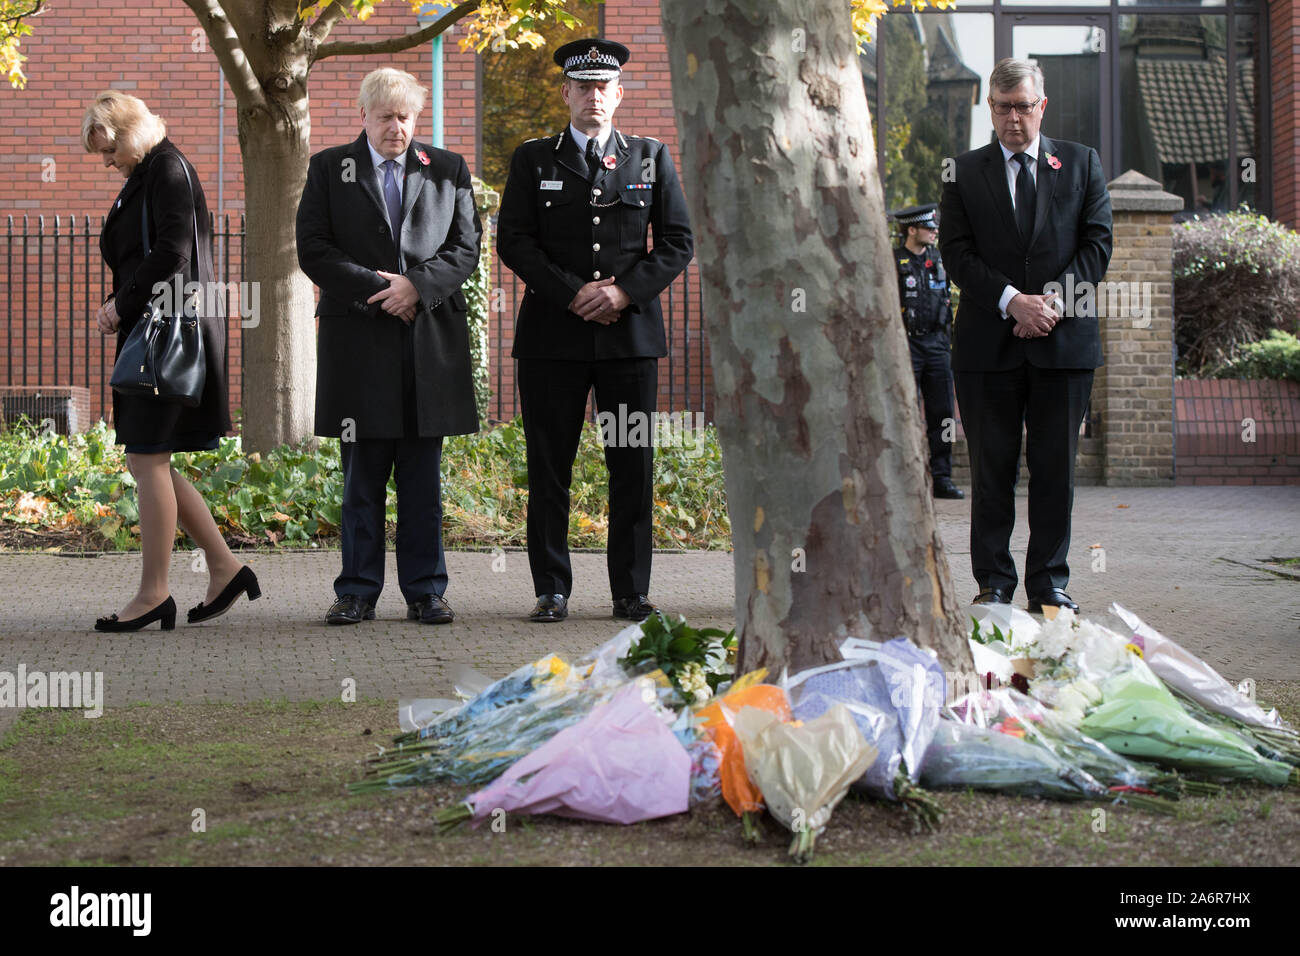 Prime Minister Boris Johnson stands with the Chief Constable of Essex Police, Ben-Julian Harrington, after they laid flowers during a visit to Thurrock Council Offices in Essex after the bodies of 39 people were found in a lorry container last week. Stock Photo